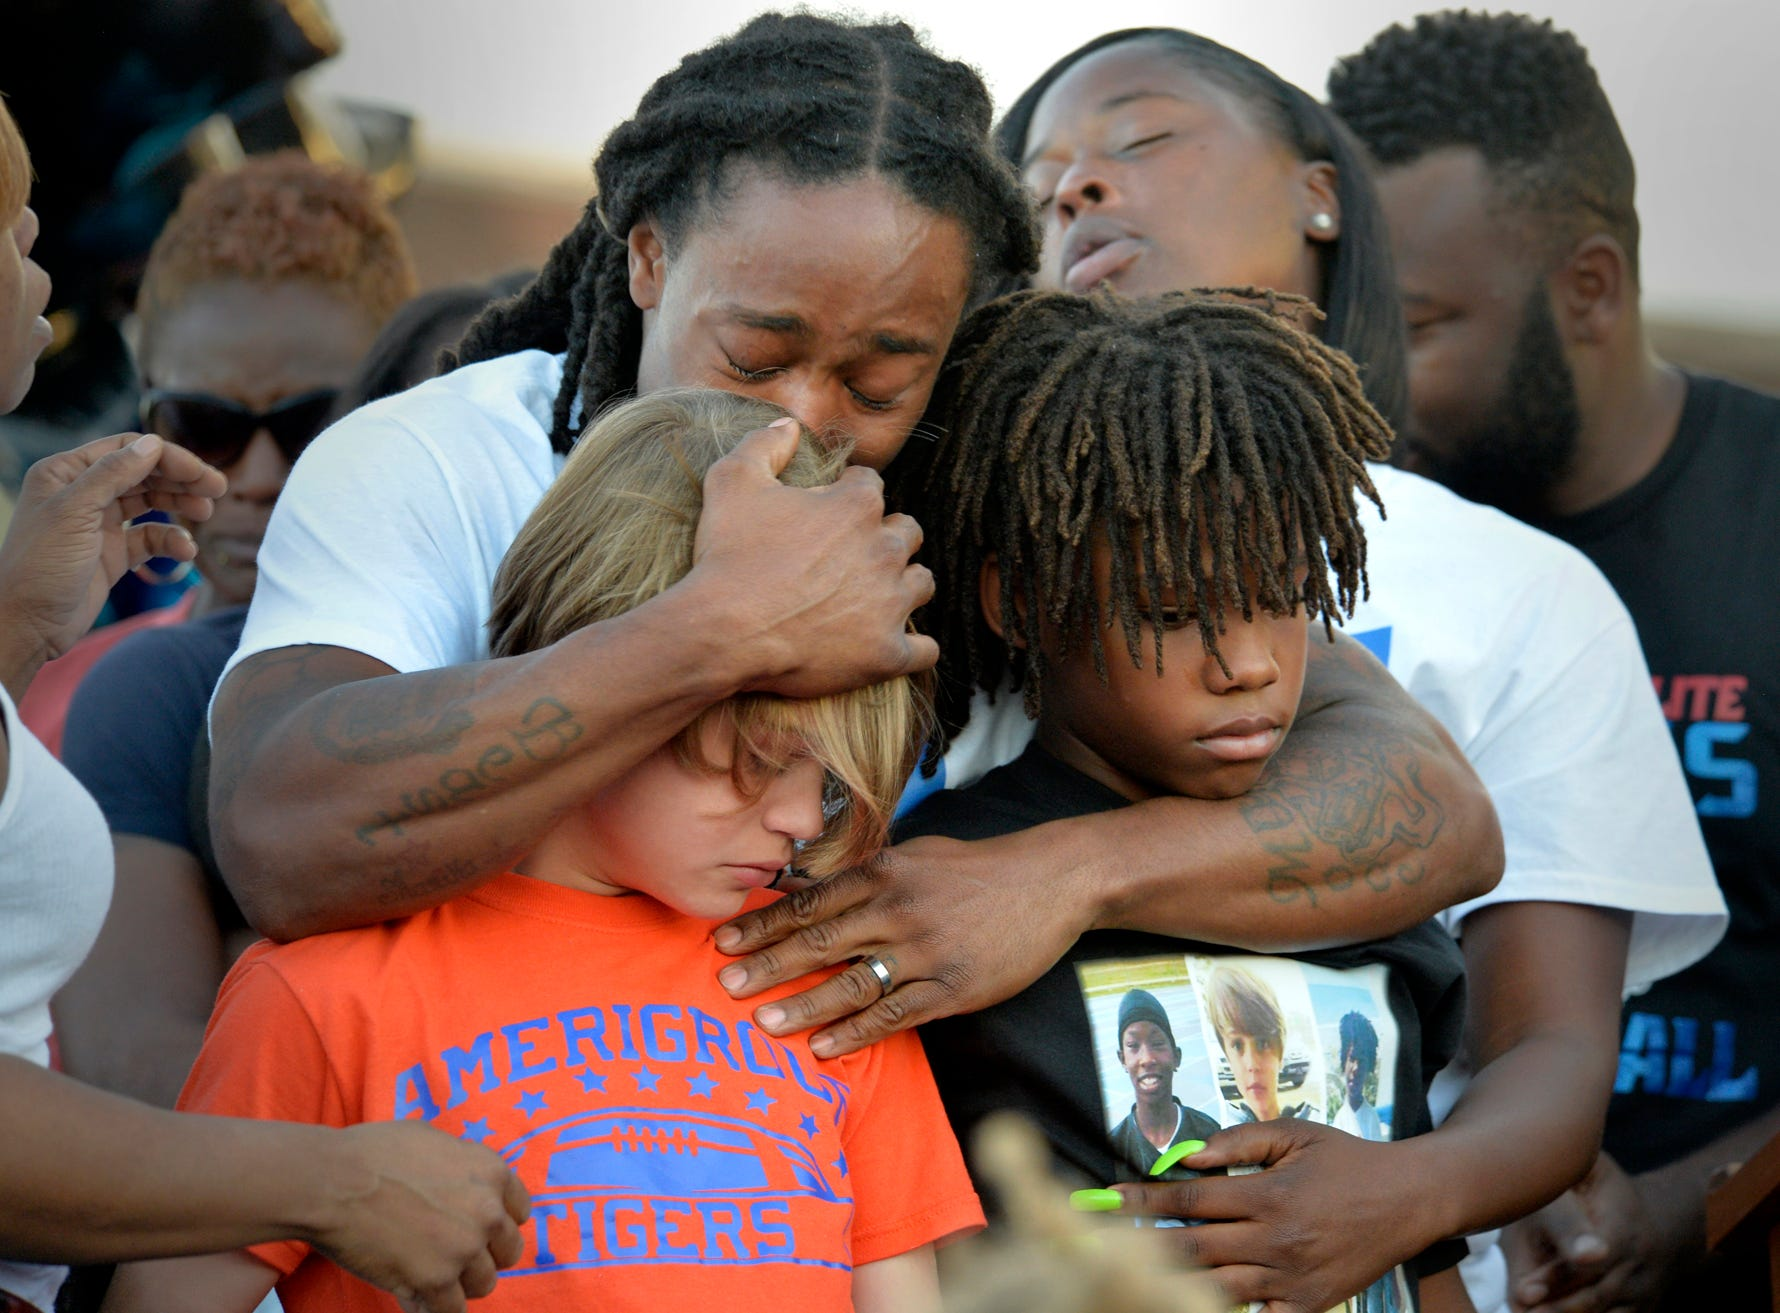 Melquan Robinson, Sr., and Chinikka Jackson, parents of electrocution victim Melquan Kwame Robinson, 12, embrace, from left, David Sette, 11, and Traqwon Berry, 13, who were both injured trying to pull their friend to safety when he was electrocuted while touching a fence that was in contact with a live wire at a ball field during a vigil at the Bernie Ward Community Center in Augusta, Ga., Thursday, Oct. 18, 2018, (Michael Holahan/The Augusta Chronicle via AP)